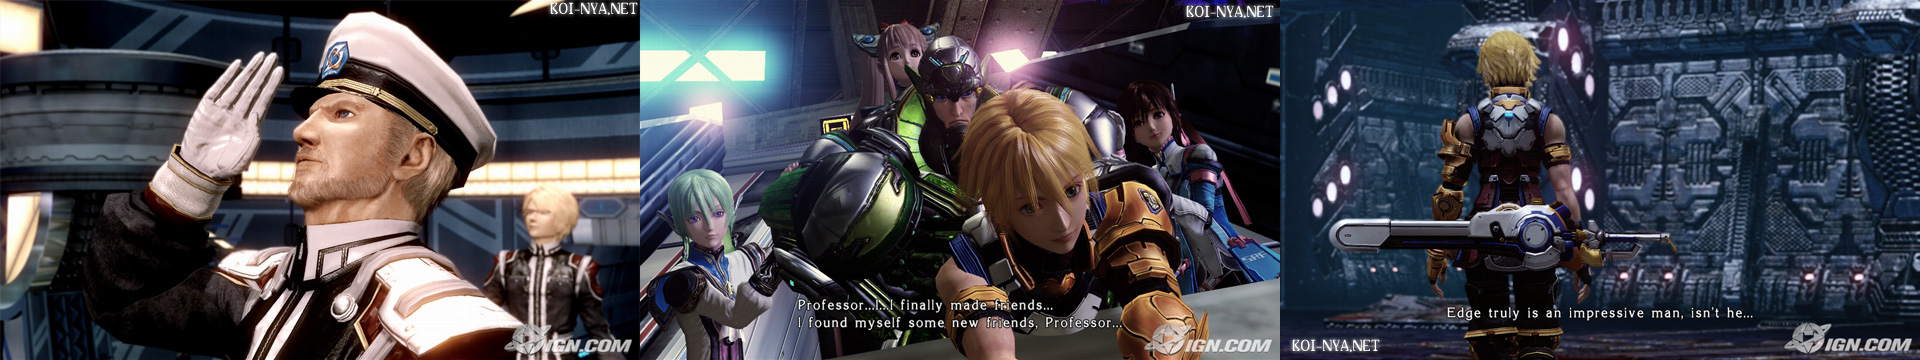 Star Ocean: The Last Hope - story